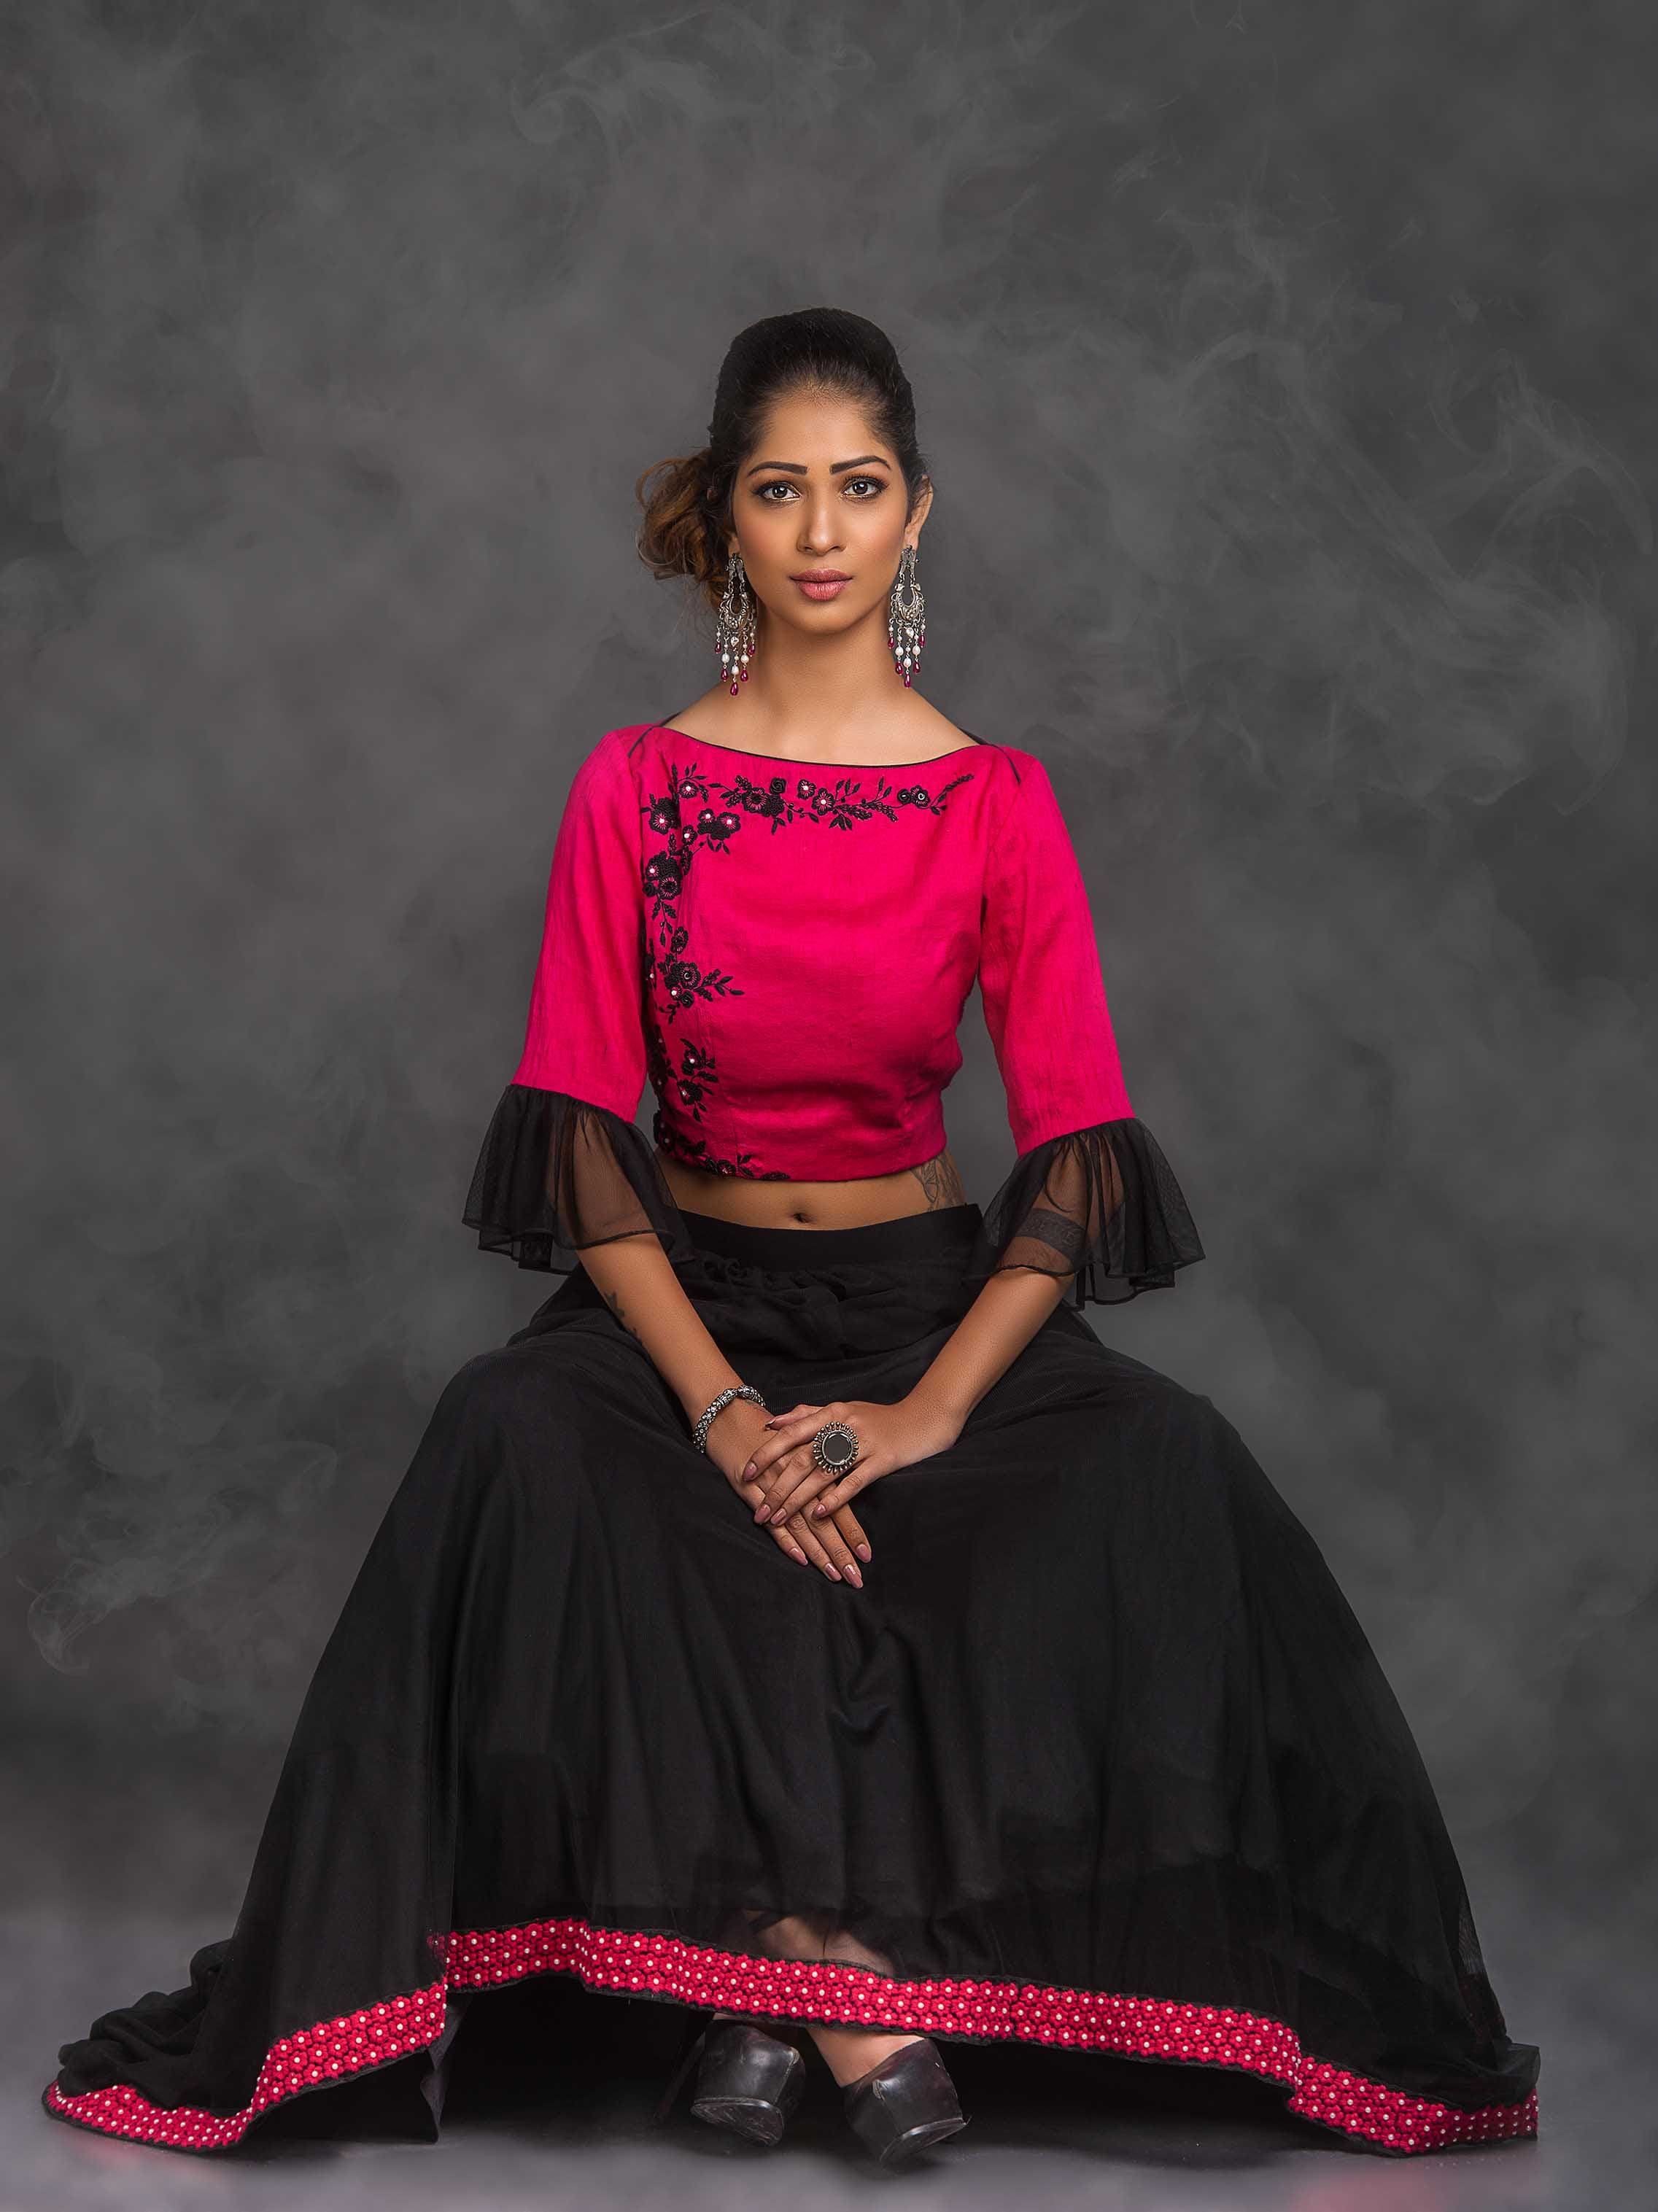 c4e06808d2e29 Pink and black lehenga and crop top